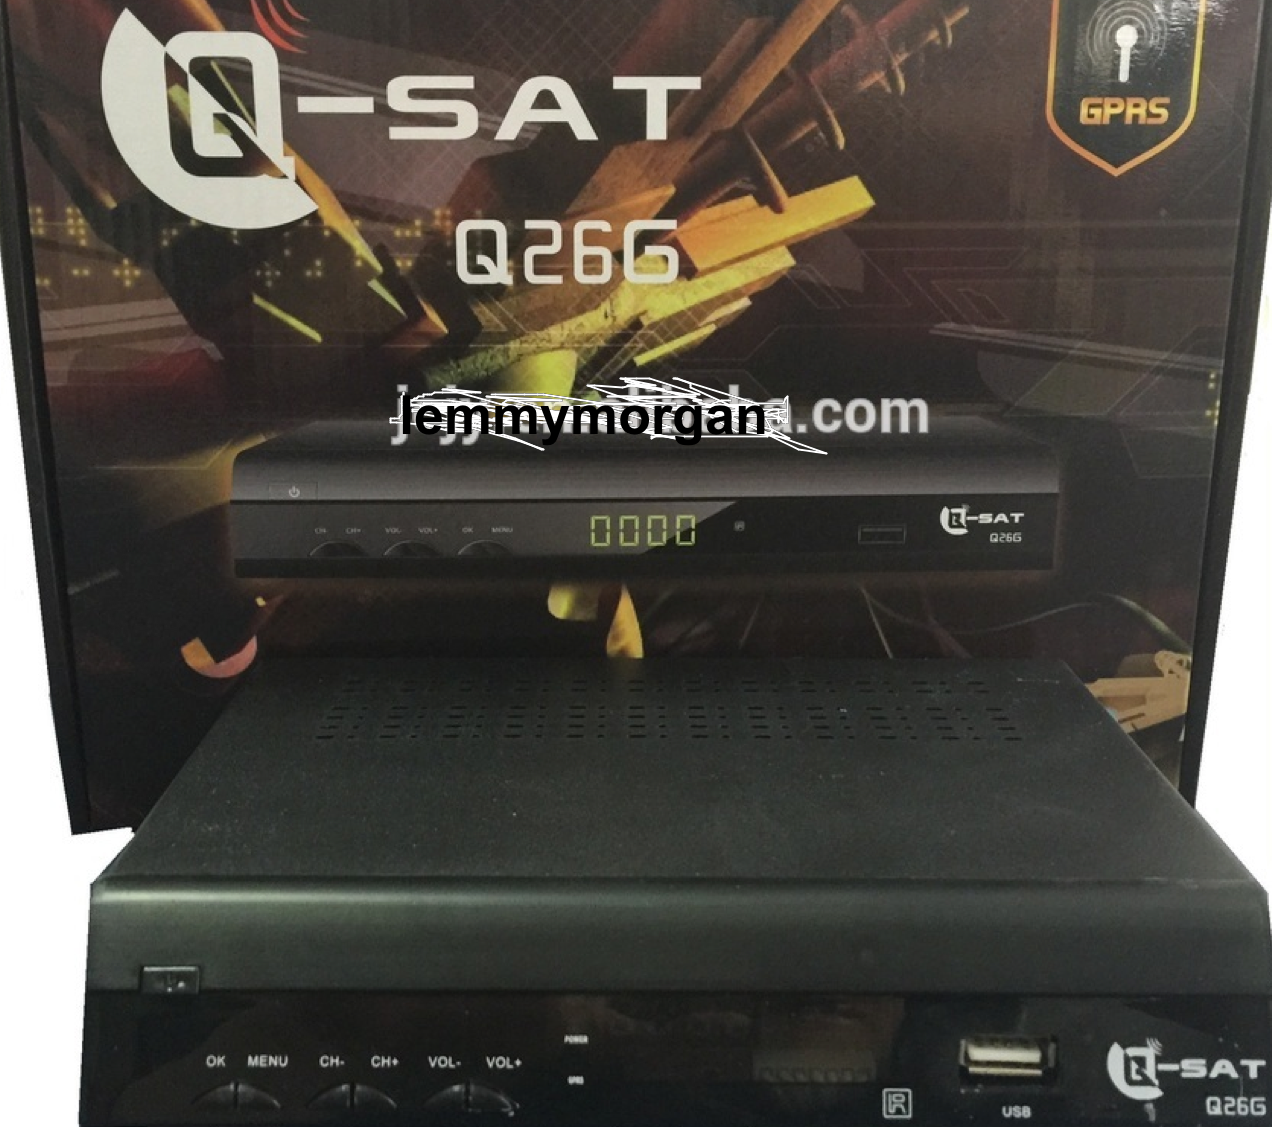 How to solve signal loss on Qsat while tracking Nigcomsat channels